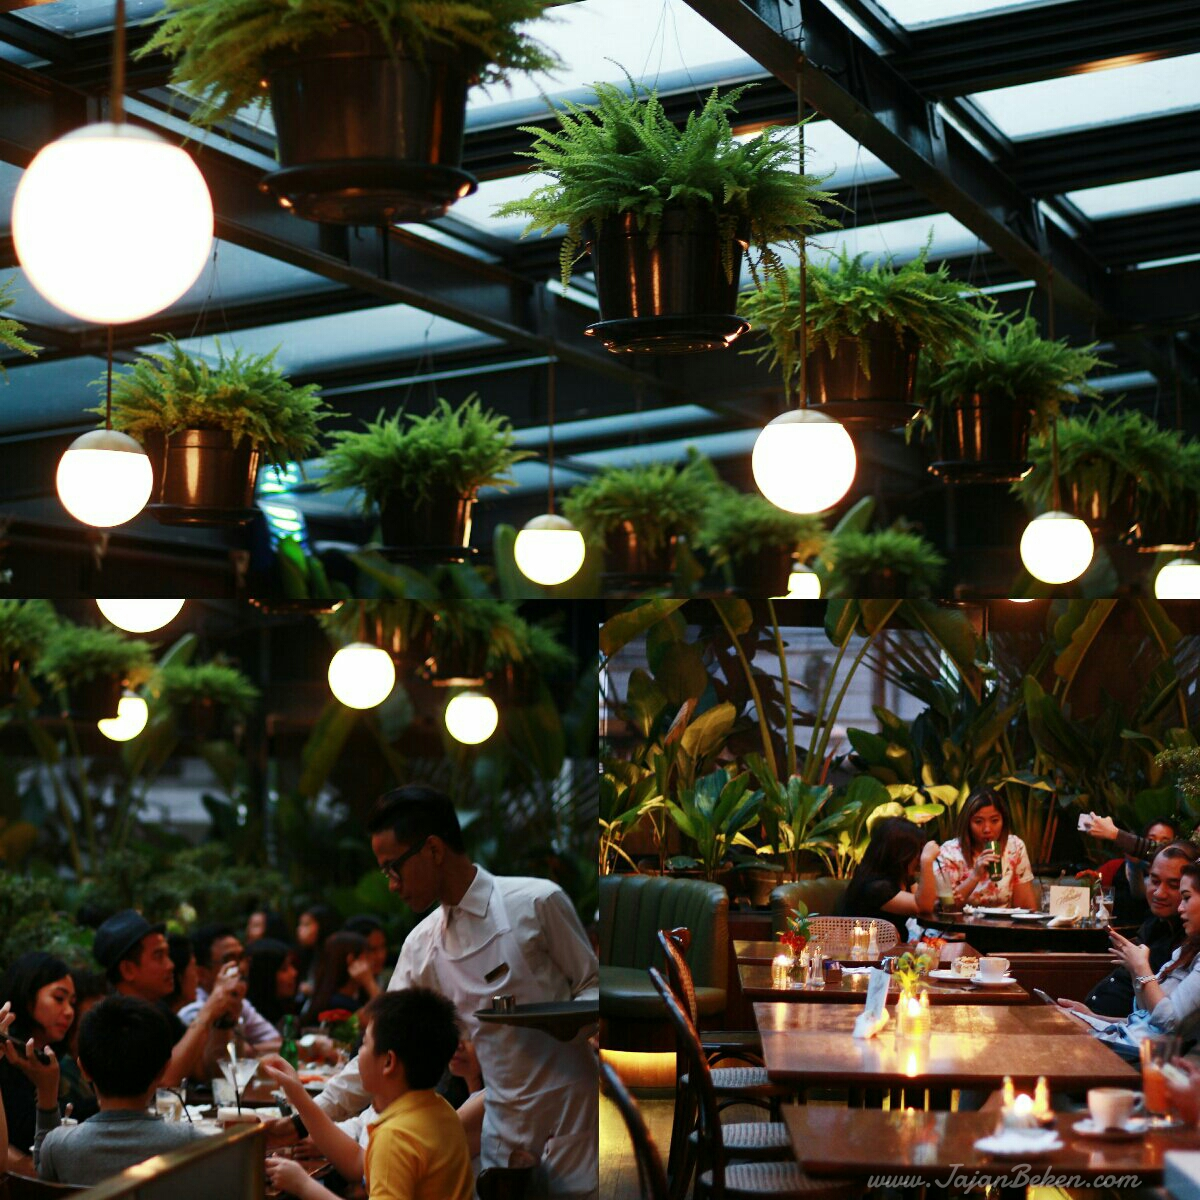 Jajan beken - olivier cafe grand indonesia